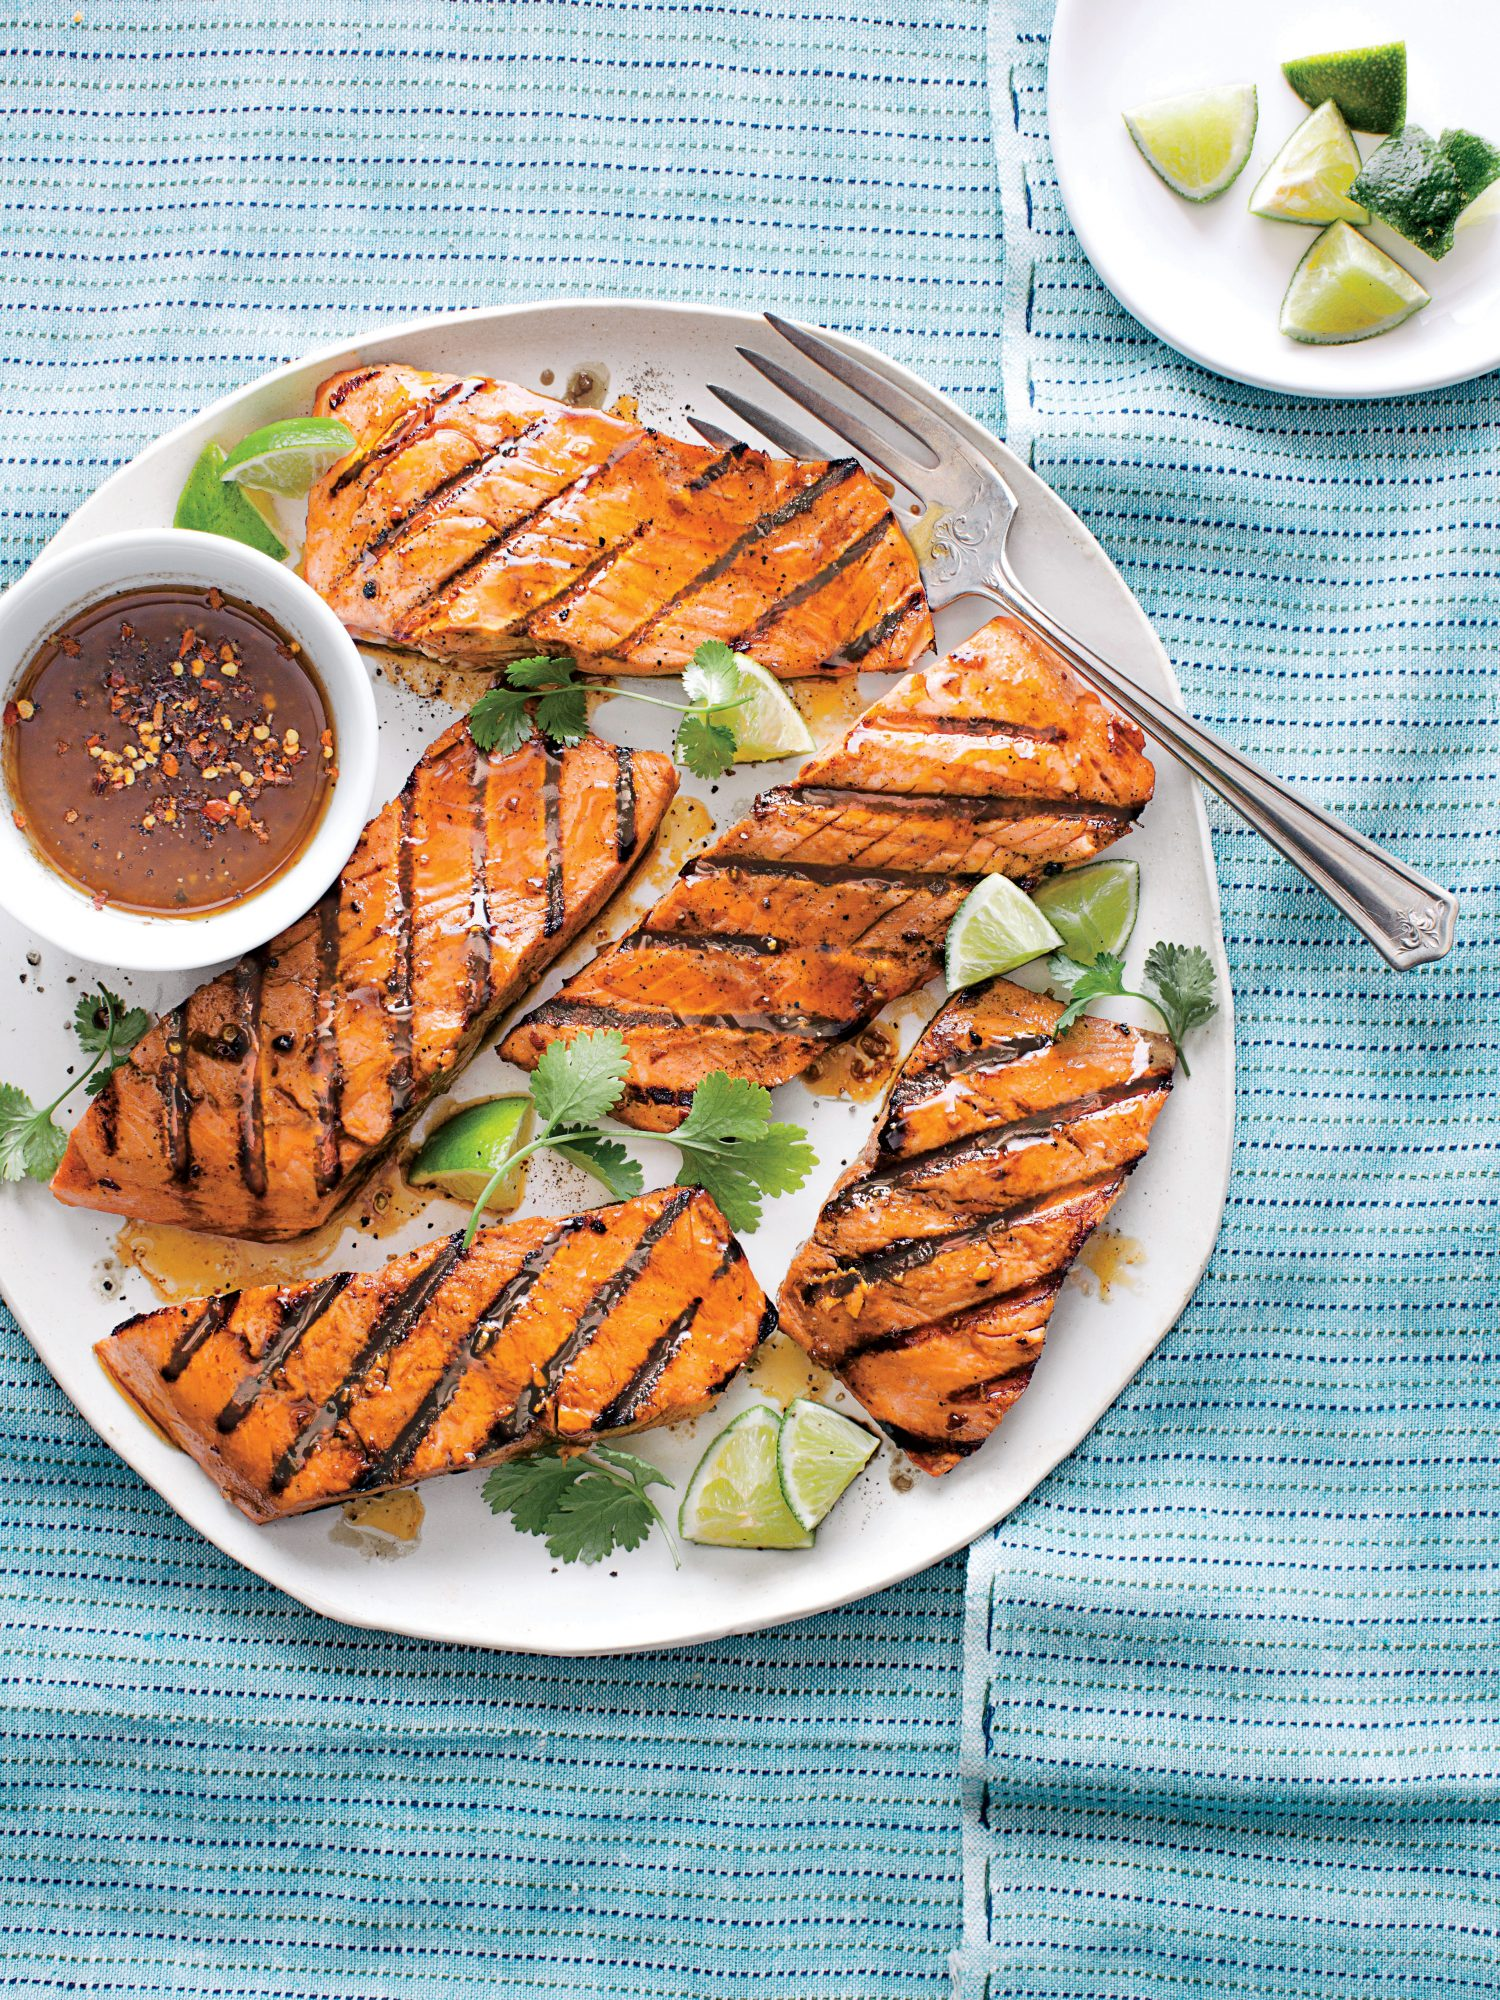 How To Grill The Perfect Piece of Salmon